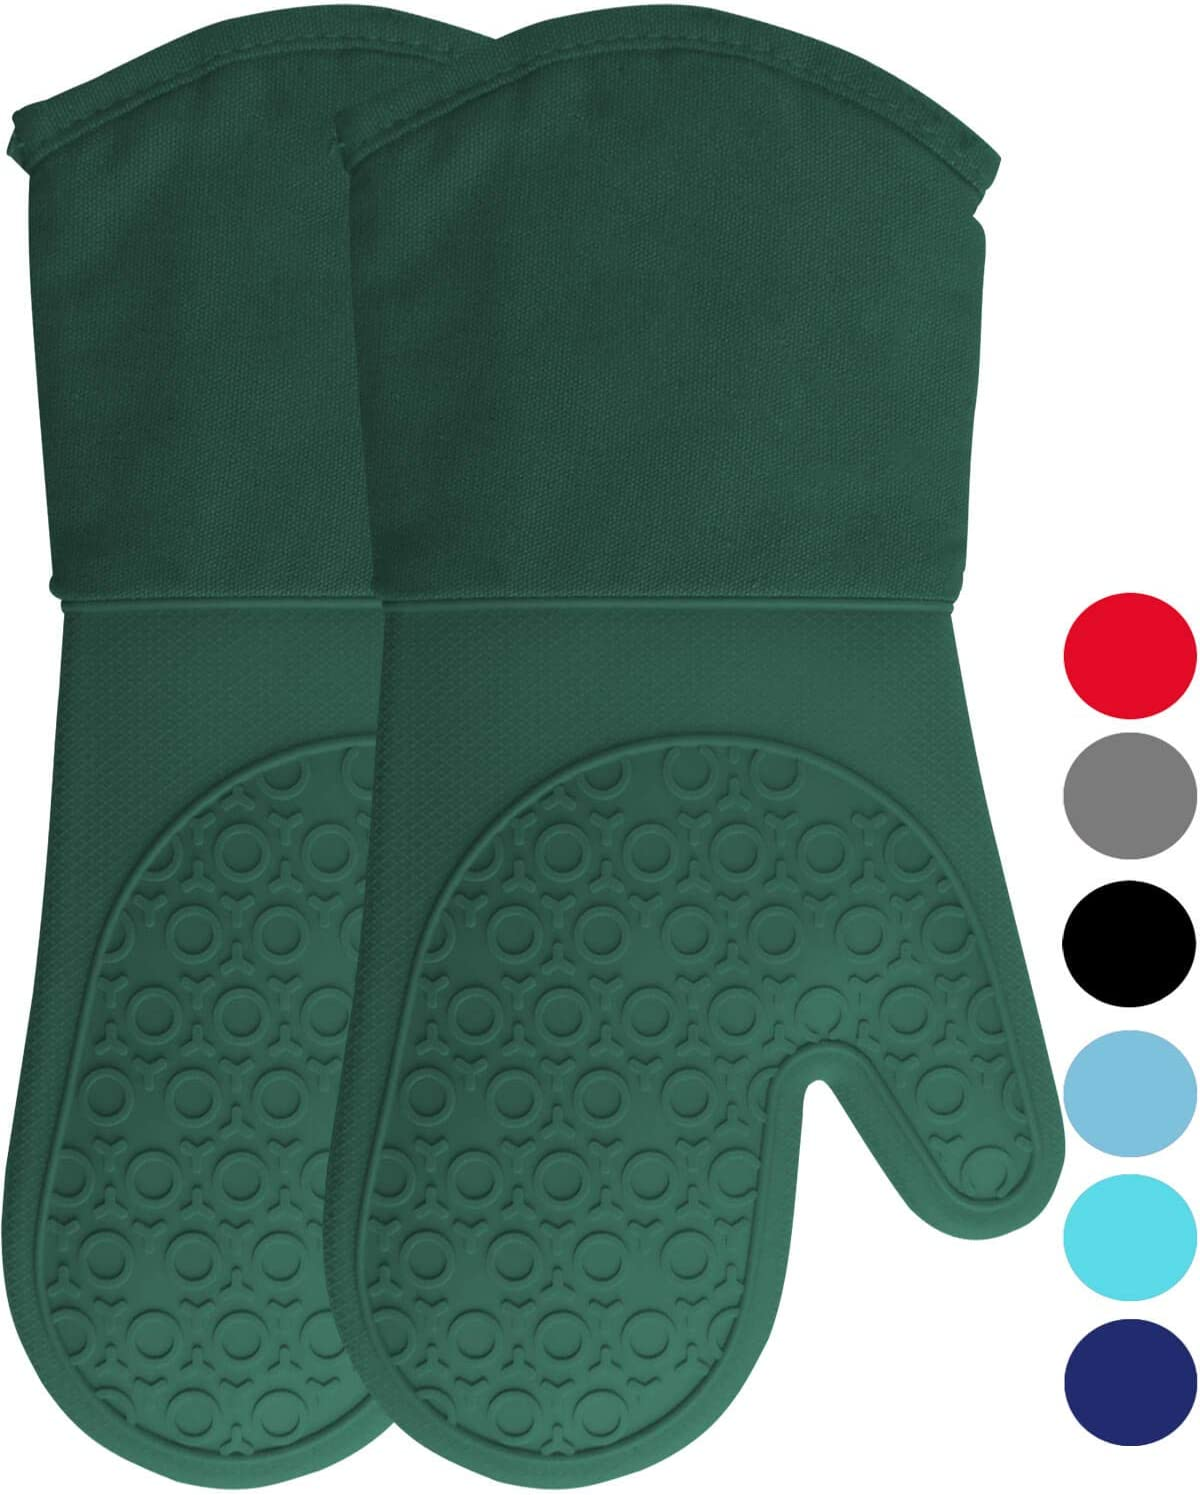 HOMWE Extra Long Professional Silicone Oven Mitt, Oven Mitts with Quilted Liner, Heat Resistant Pot Holders, Flexible Oven Gloves, Green, 1 Pair, 13.7 Inch